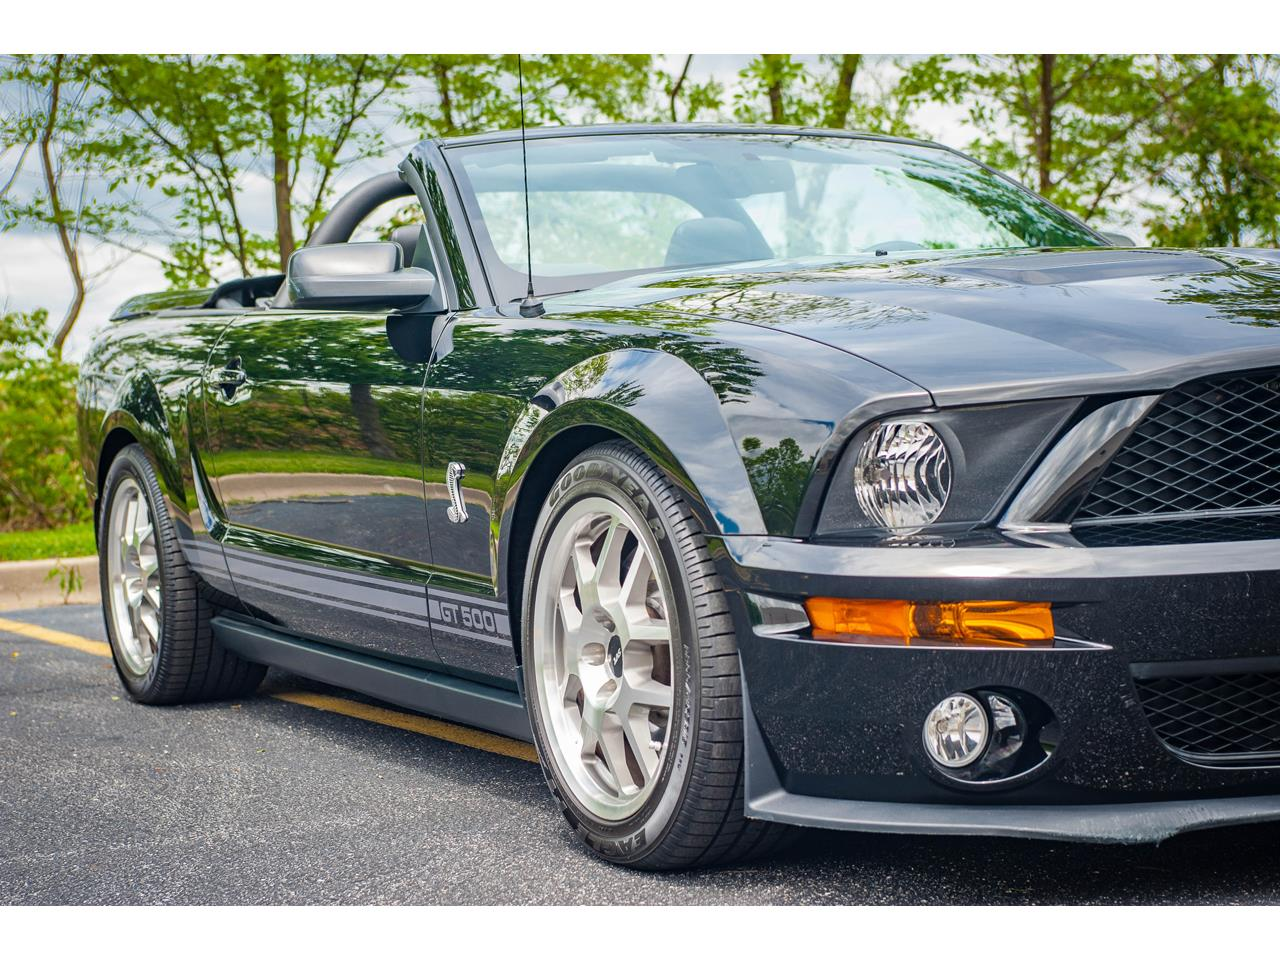 Large Picture of '07 Mustang located in O'Fallon Illinois - $40,500.00 - QB98